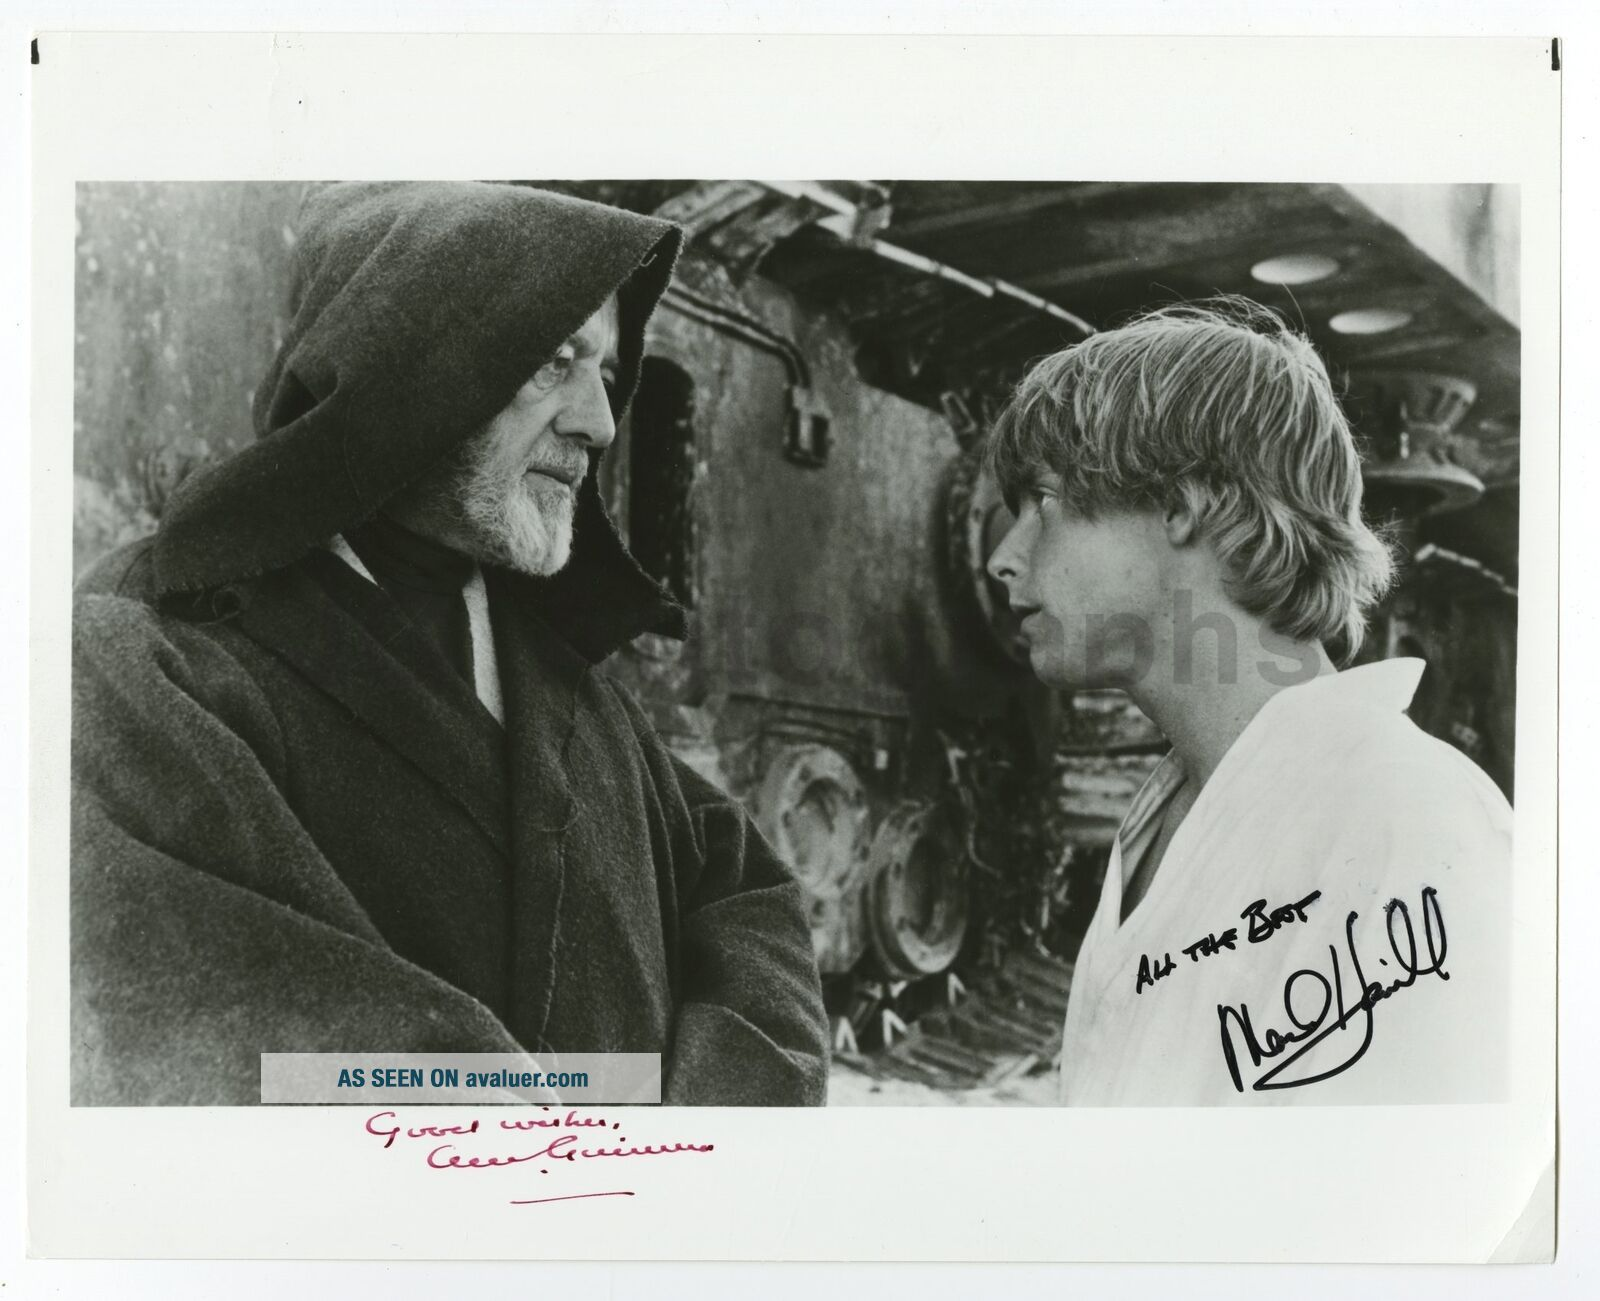 Star Wars - Vintage 8x10 Autographed by Alec Guinness and Mark Hamill - Scarce